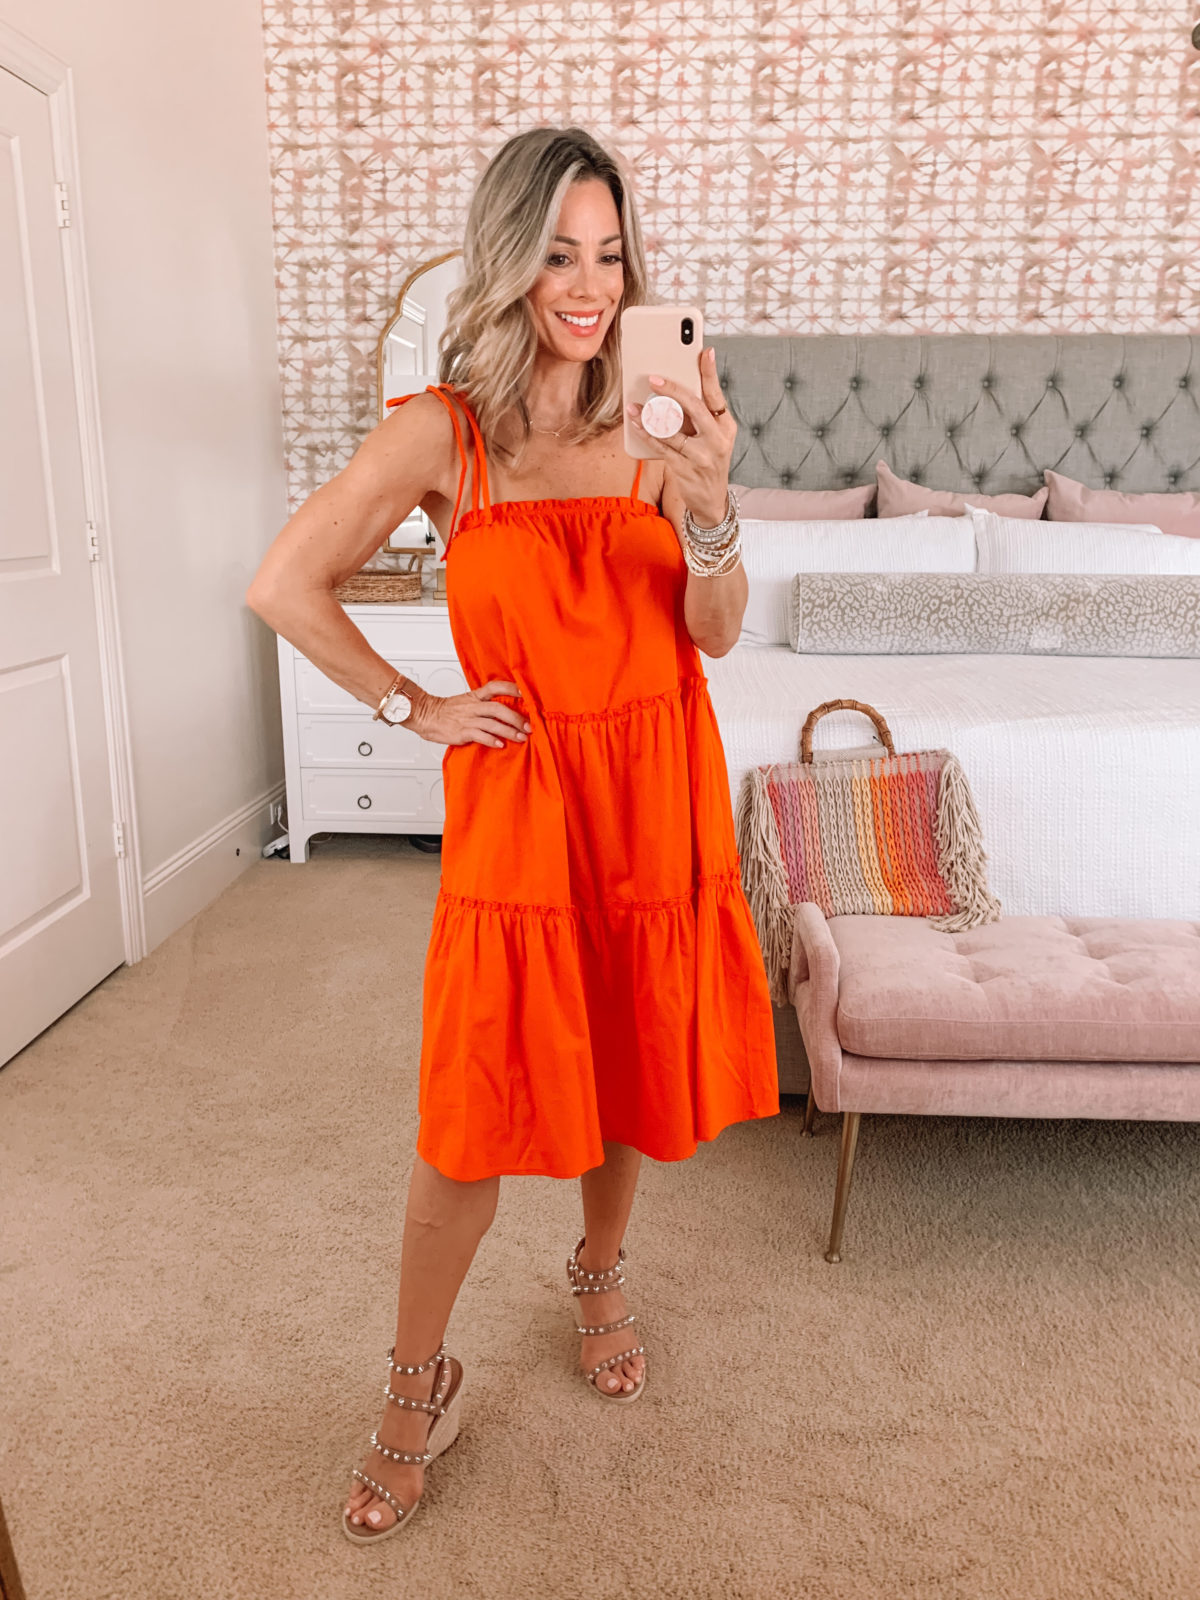 Amazon Fashion Faves, Spaghetti Strap Shift Dress and Wedges with Tote Bag